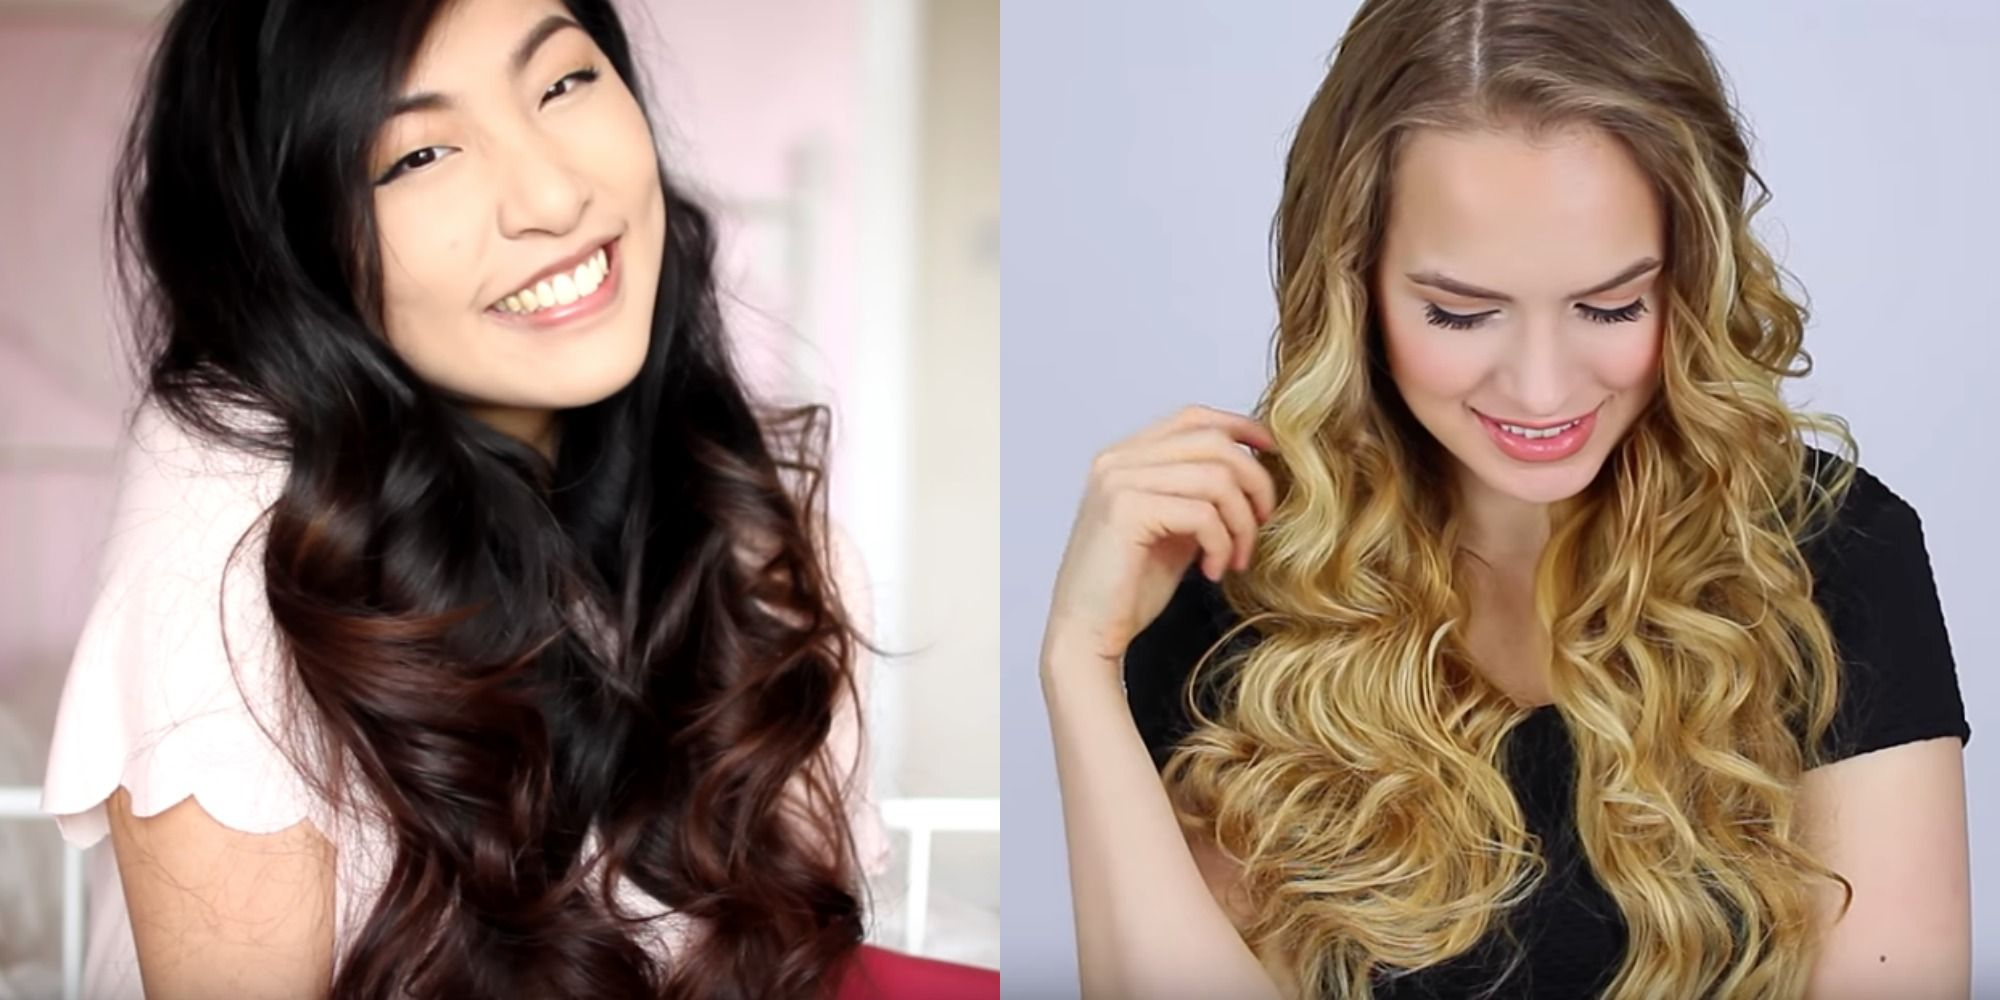 How to make wavy hair curly with a curling iron for beginners